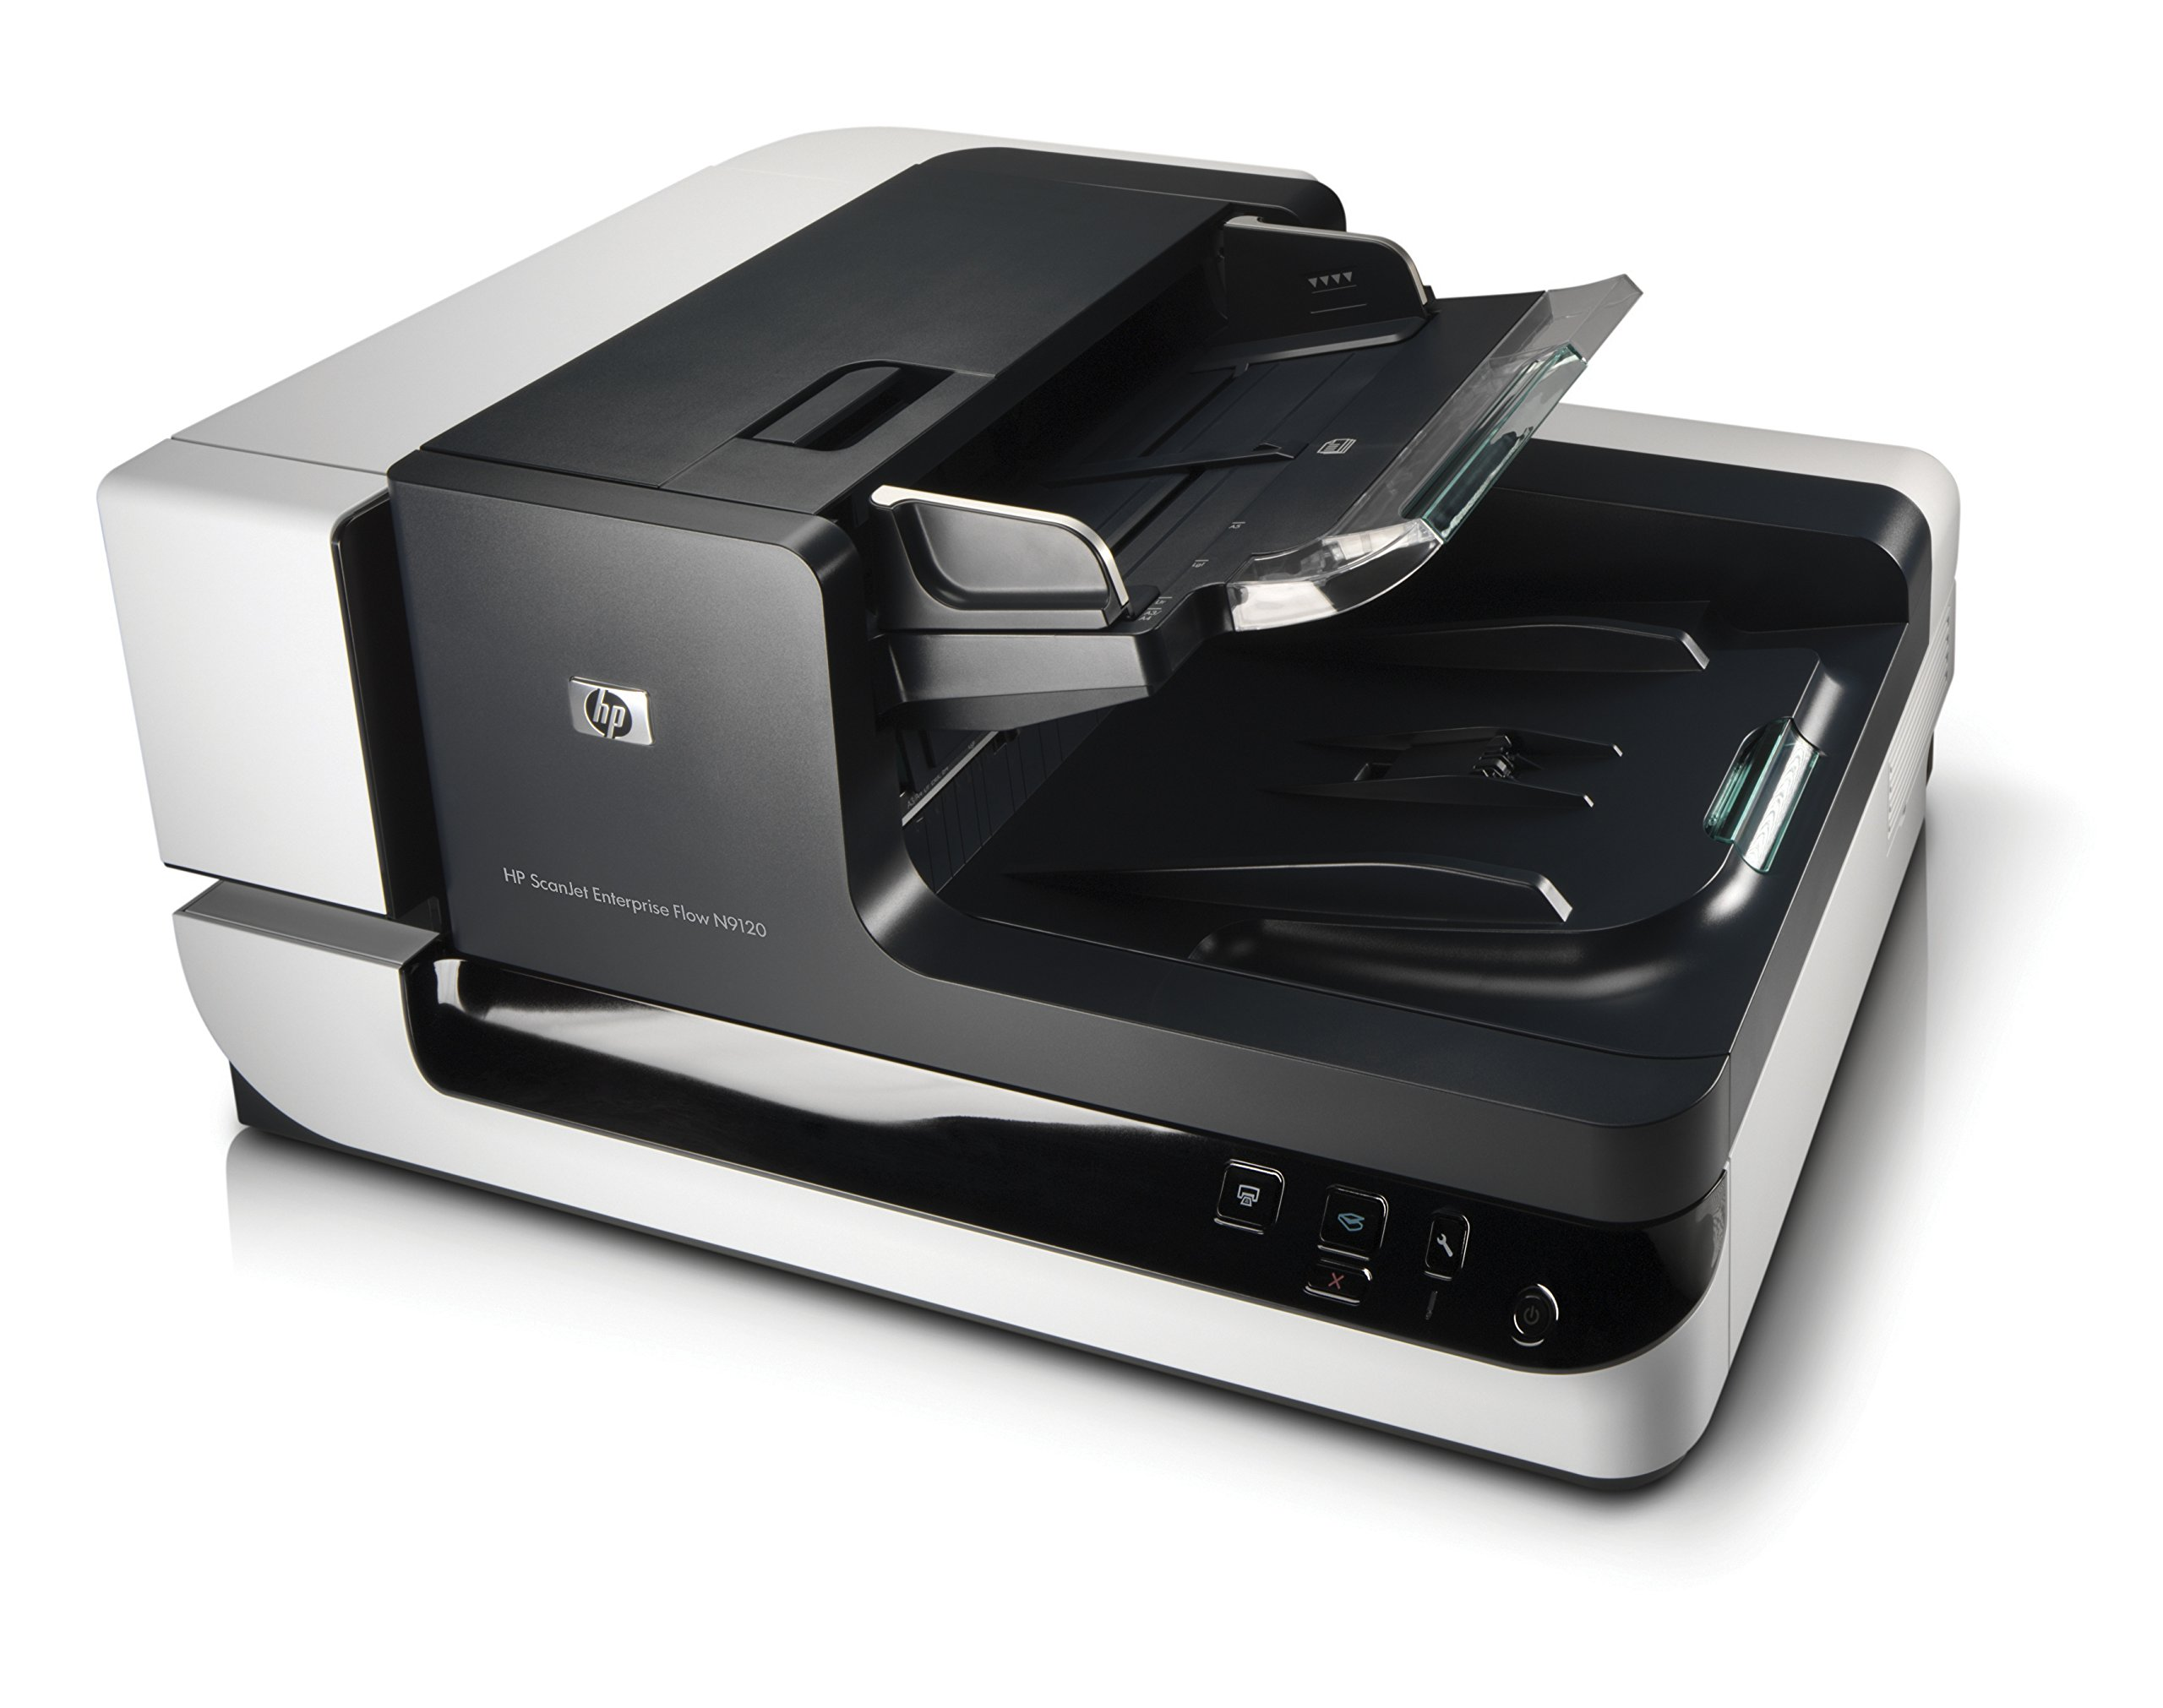 HP ScanJet Enterprise Flow N9120 Flatbed OCR Scanner by HP (Image #11)